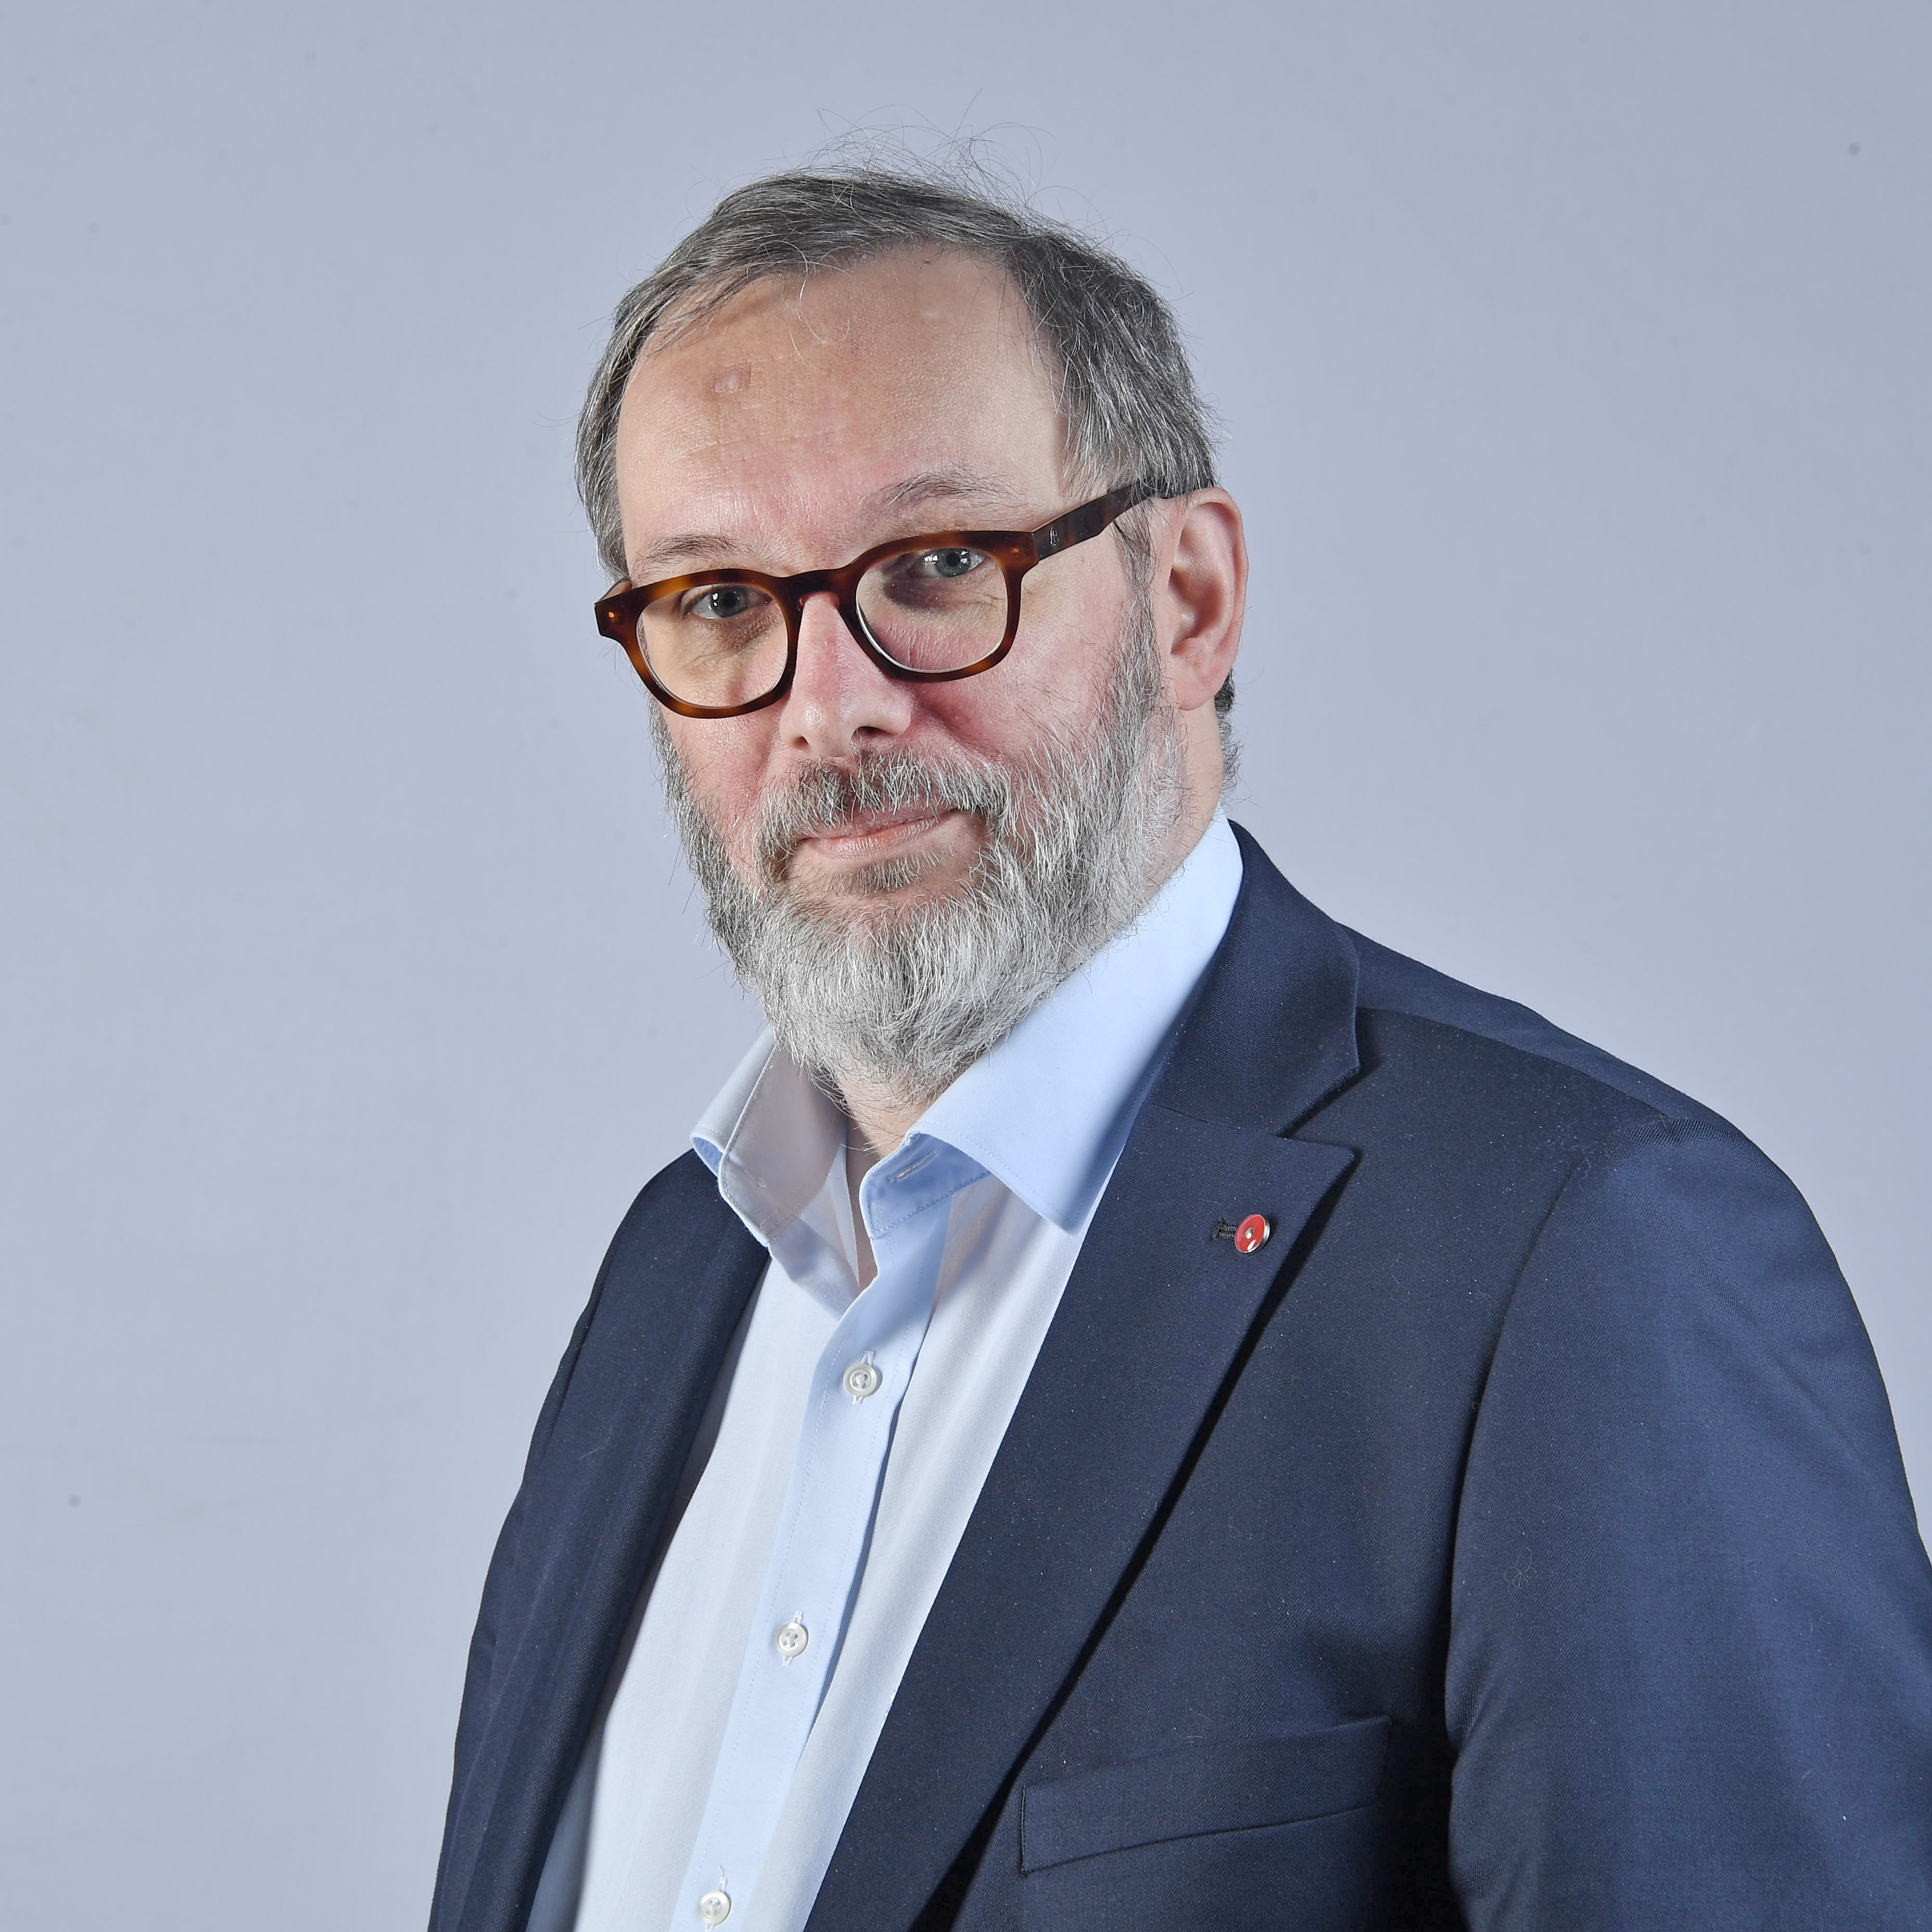 Dr. Philippe Montaner